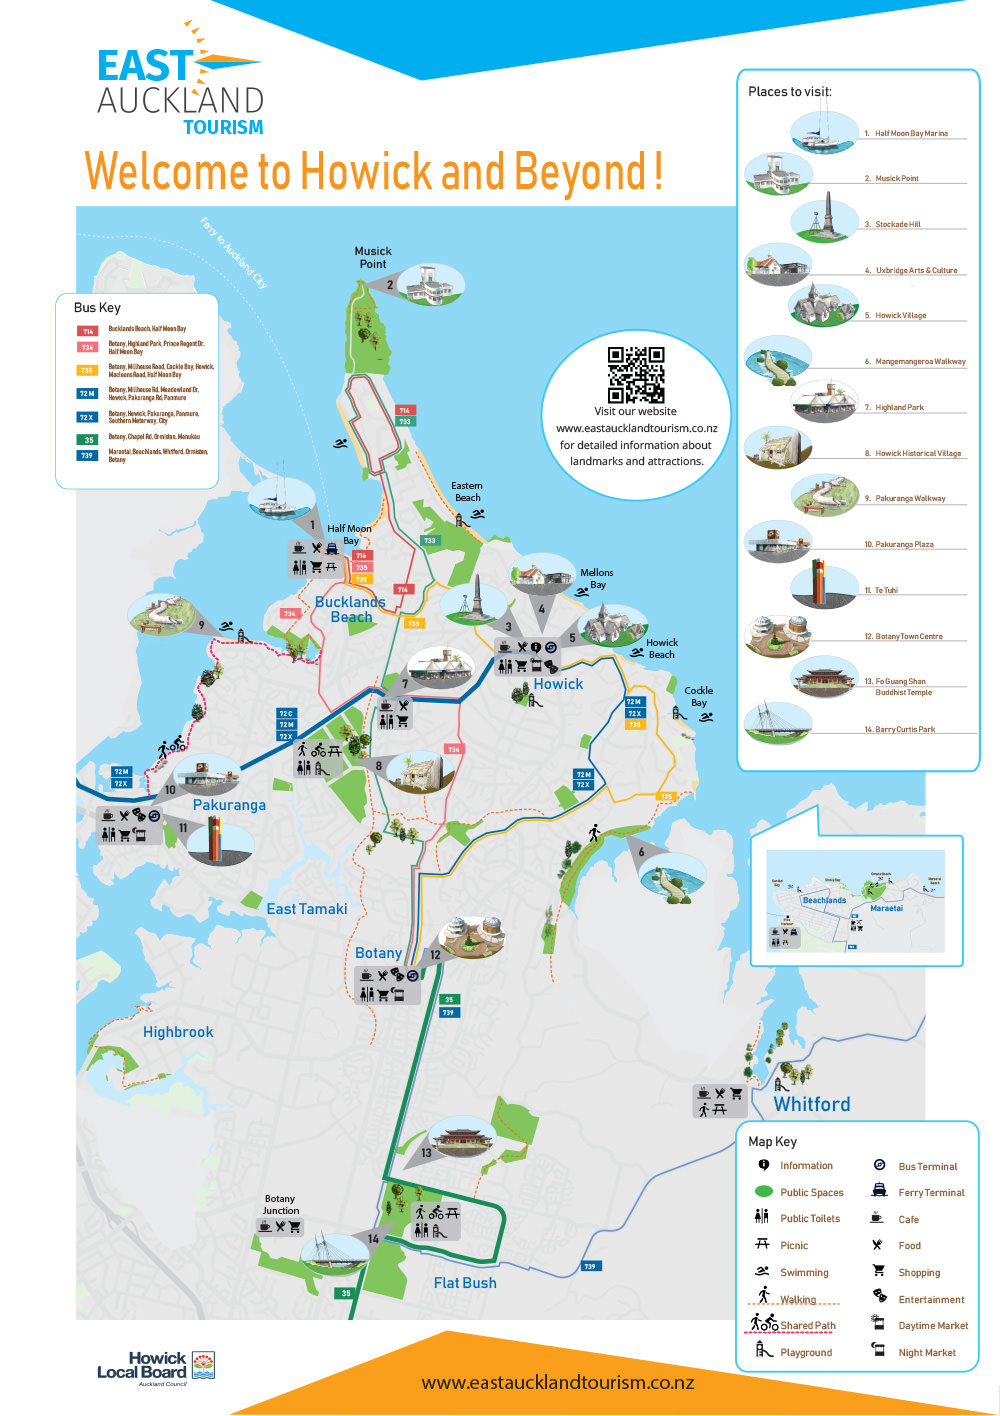 Discover East Auckland! - Map